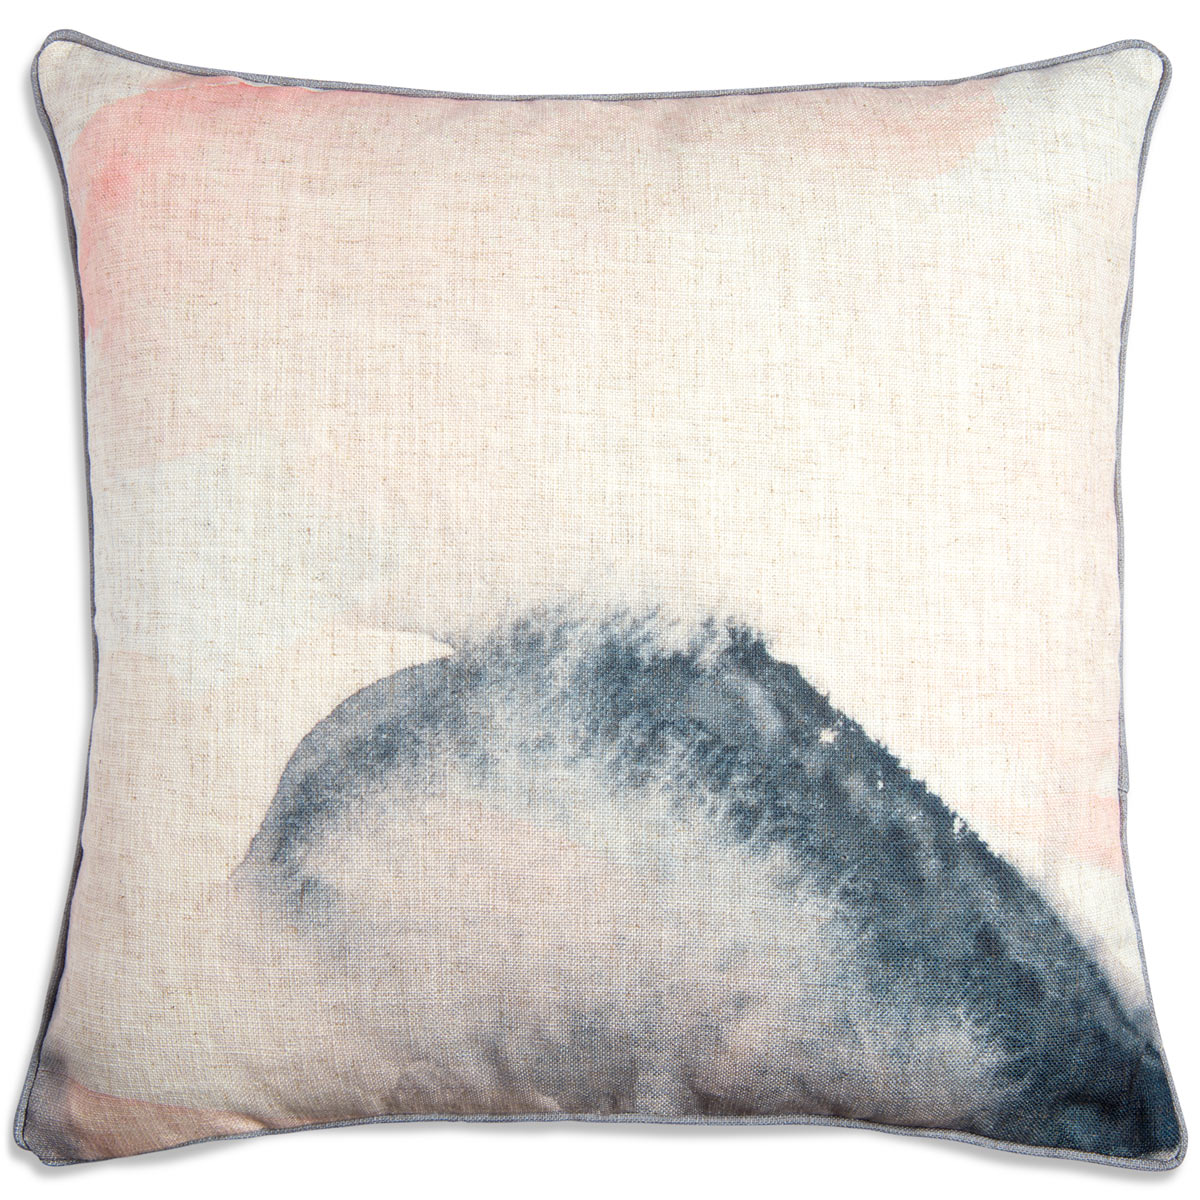 Blush Abstract Greywelt Pillow - ModShop1.com